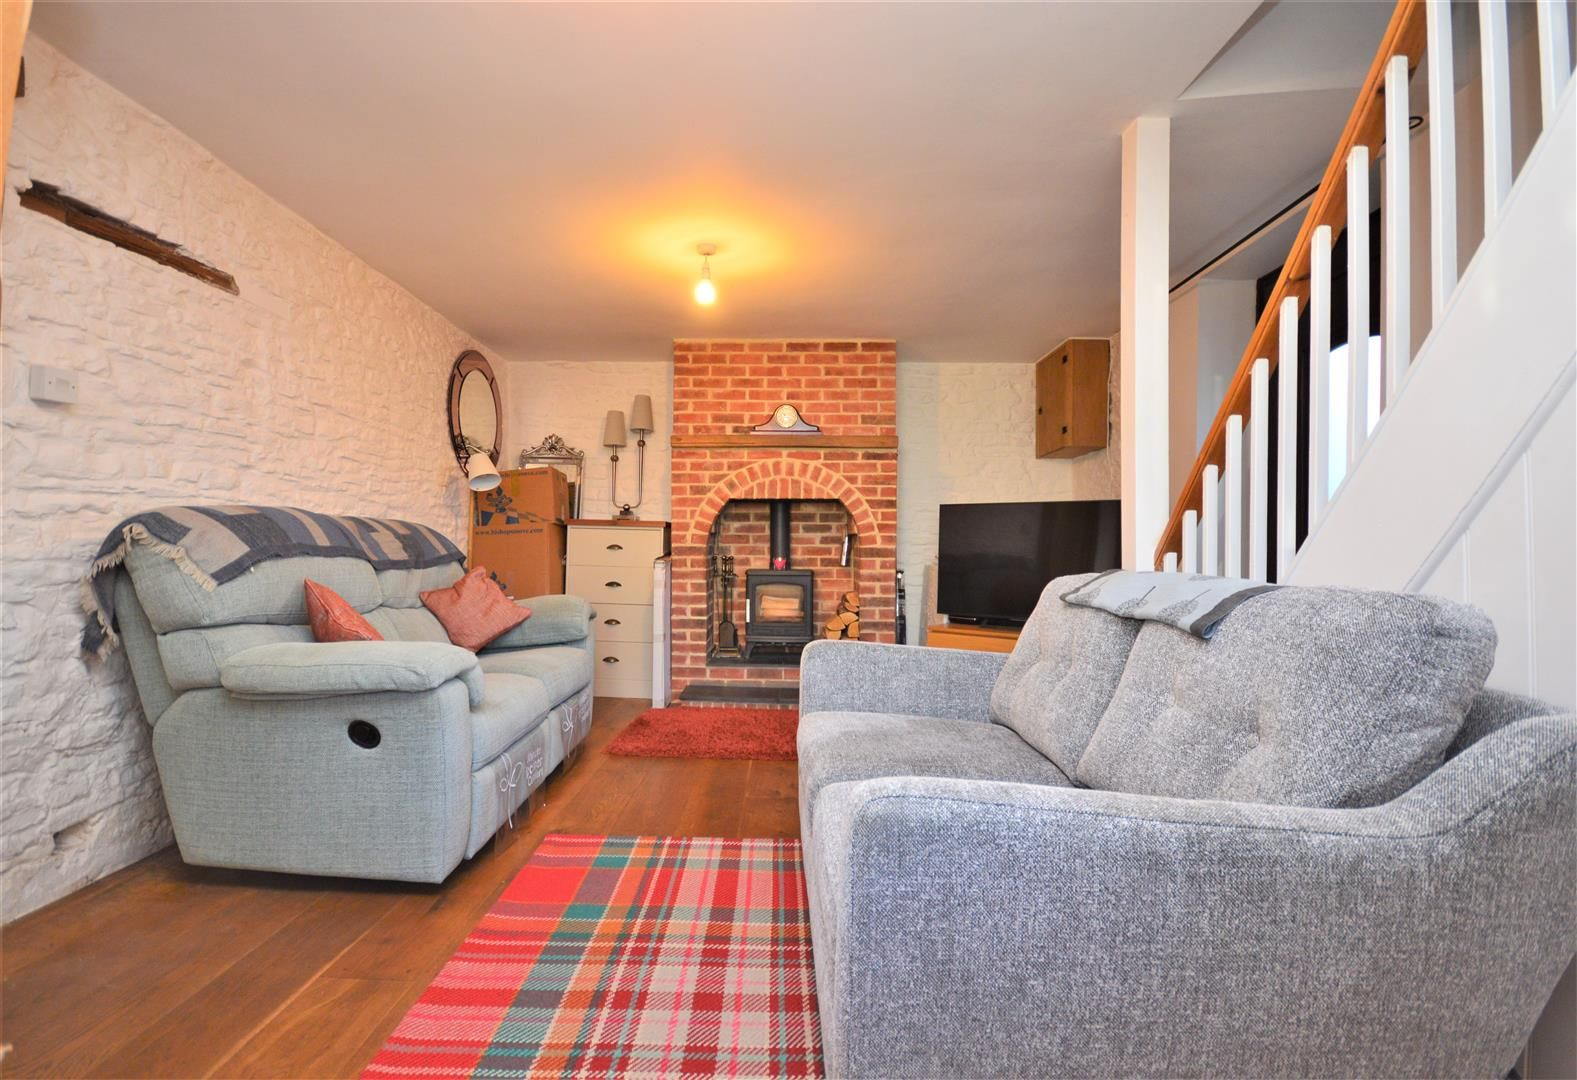 1 bed end-of-terrace for sale in Callow  - Property Image 2